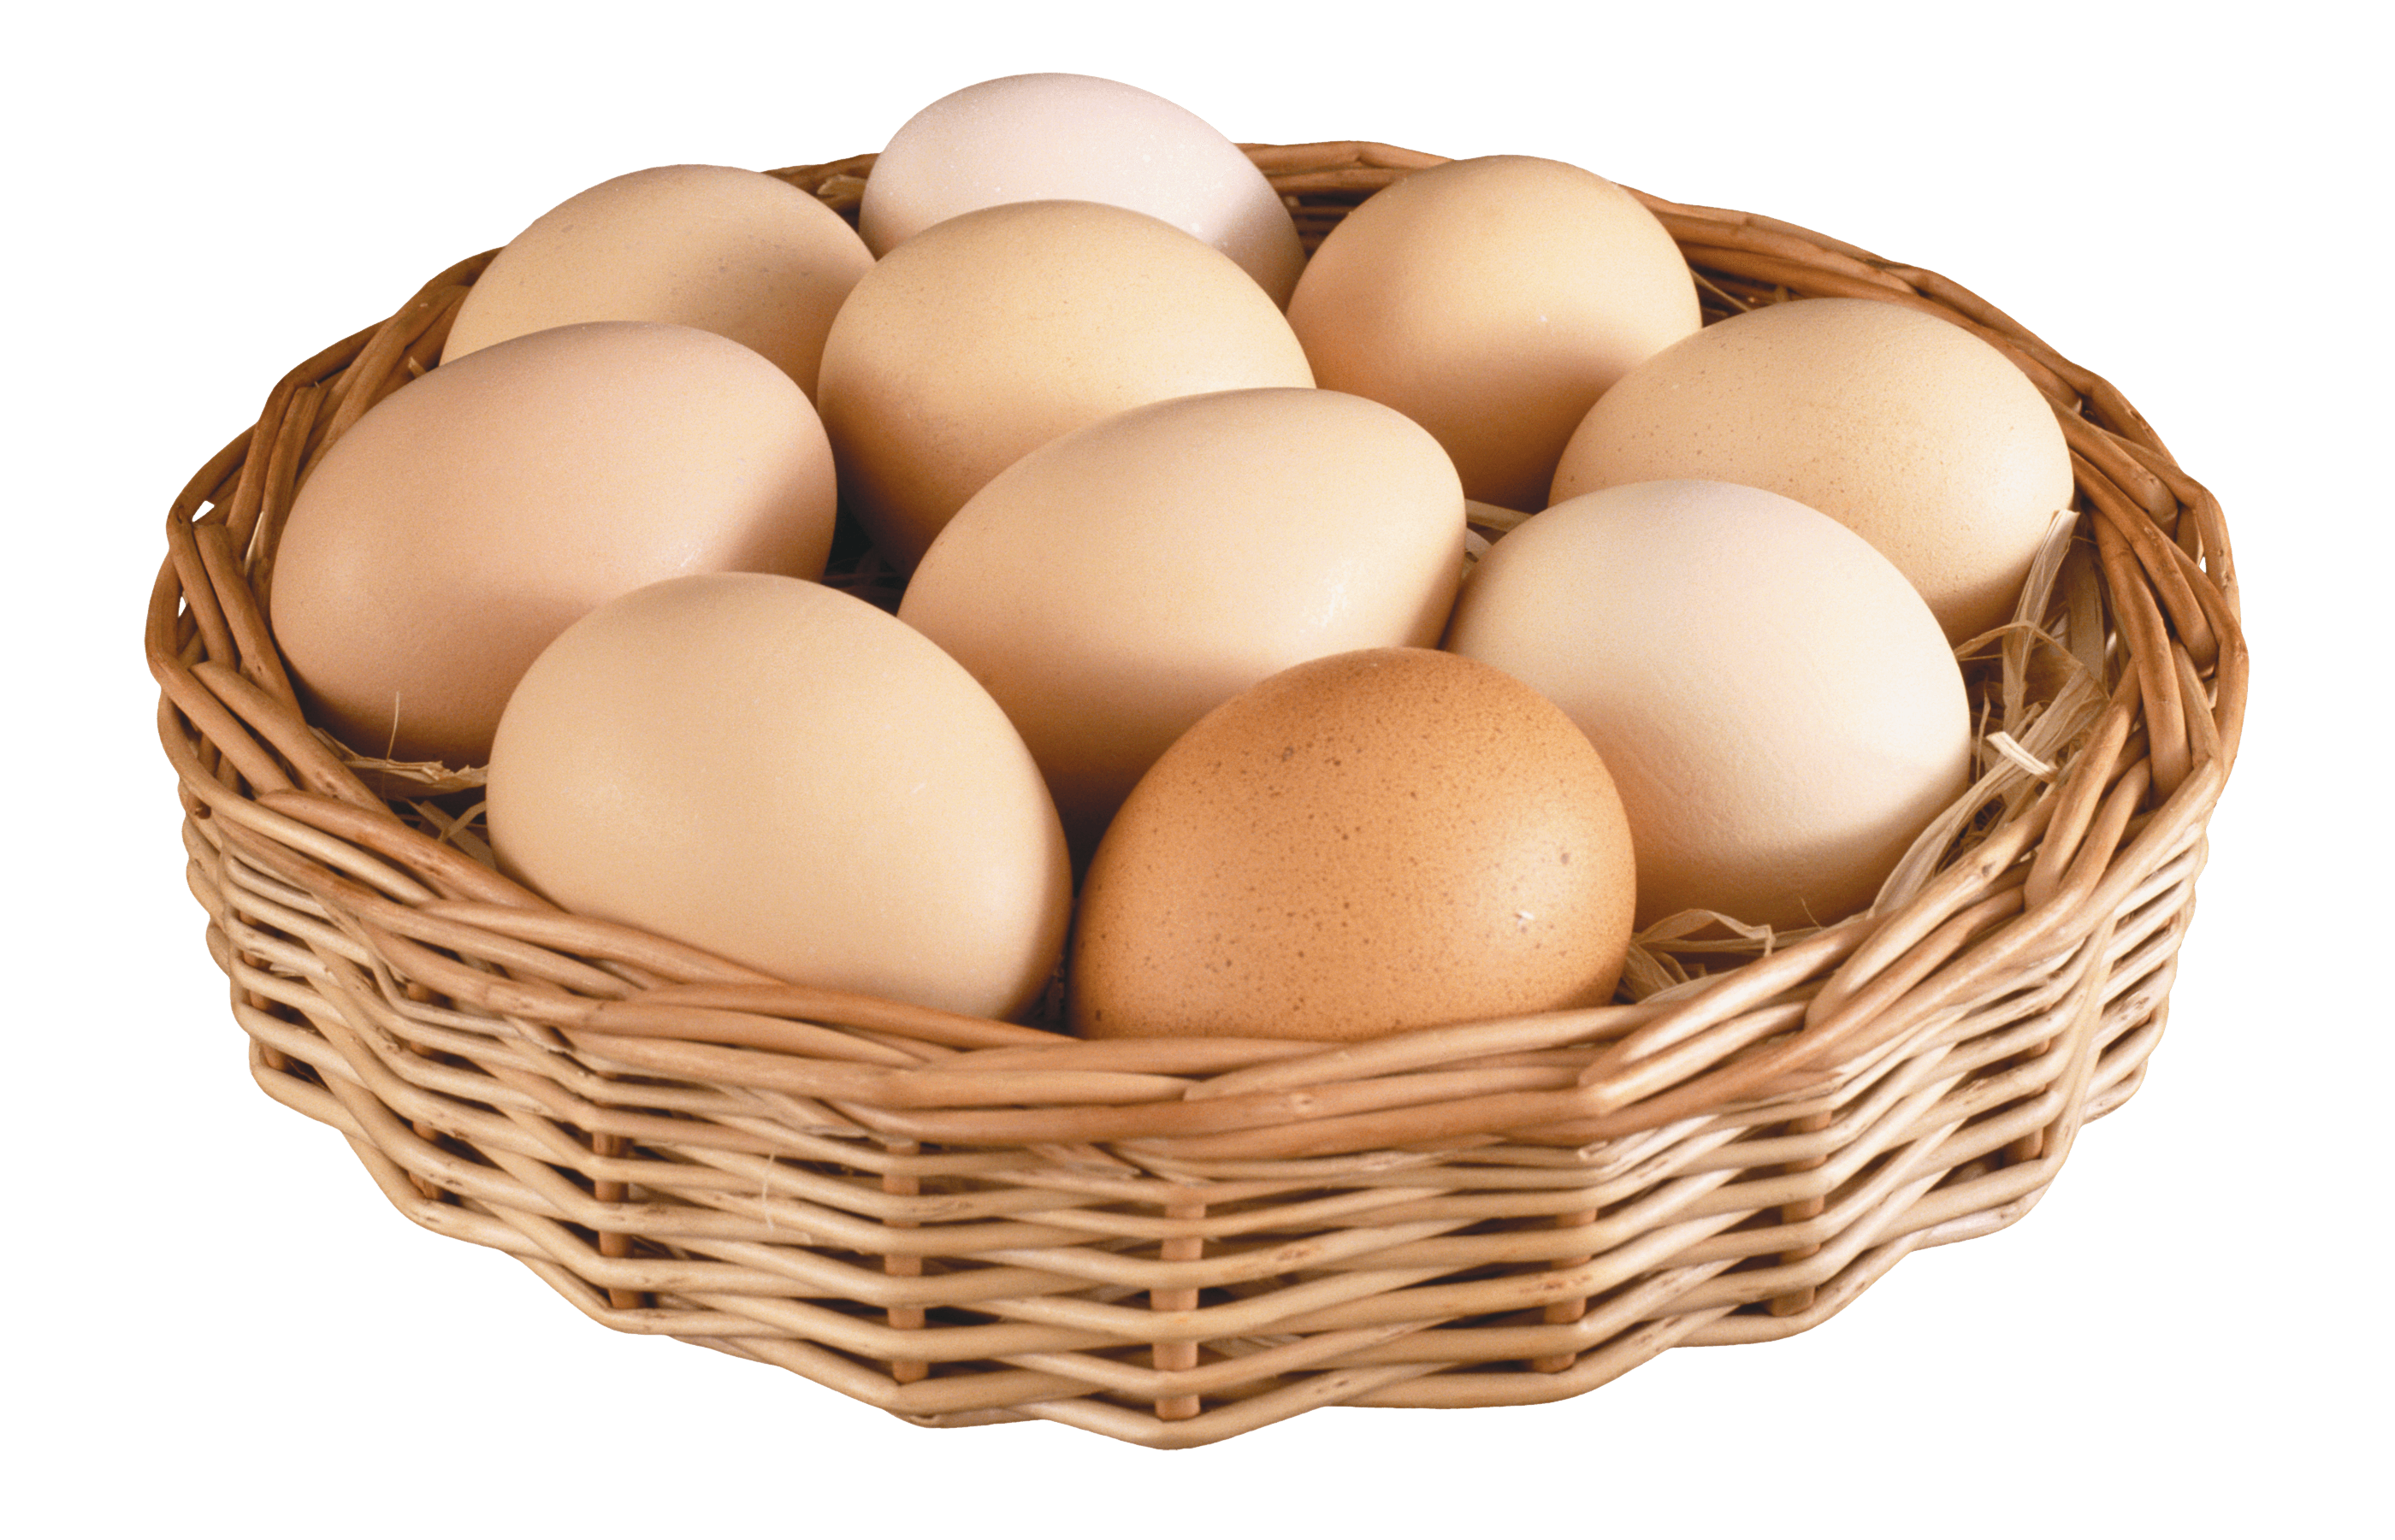 Basket transparent png stickpng. Eggs clipart nest